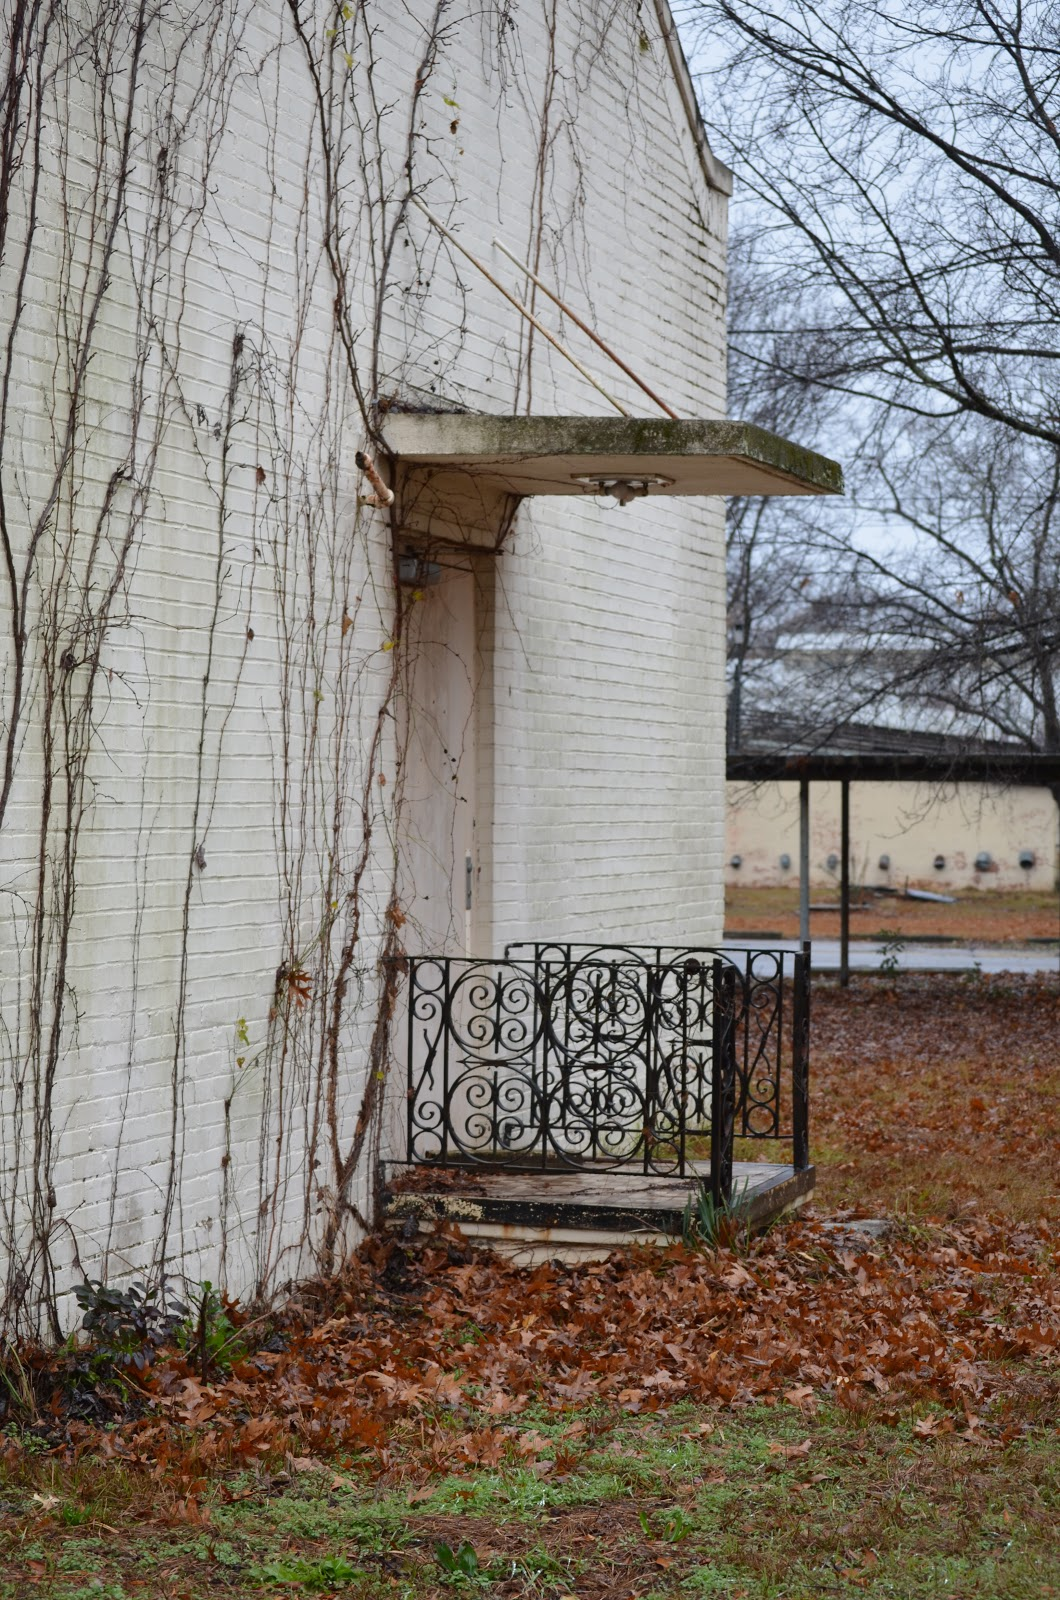 we believe these buildings were where they housed the criminally insane but we aren t positive we heard it was in two back buildings with bars on their